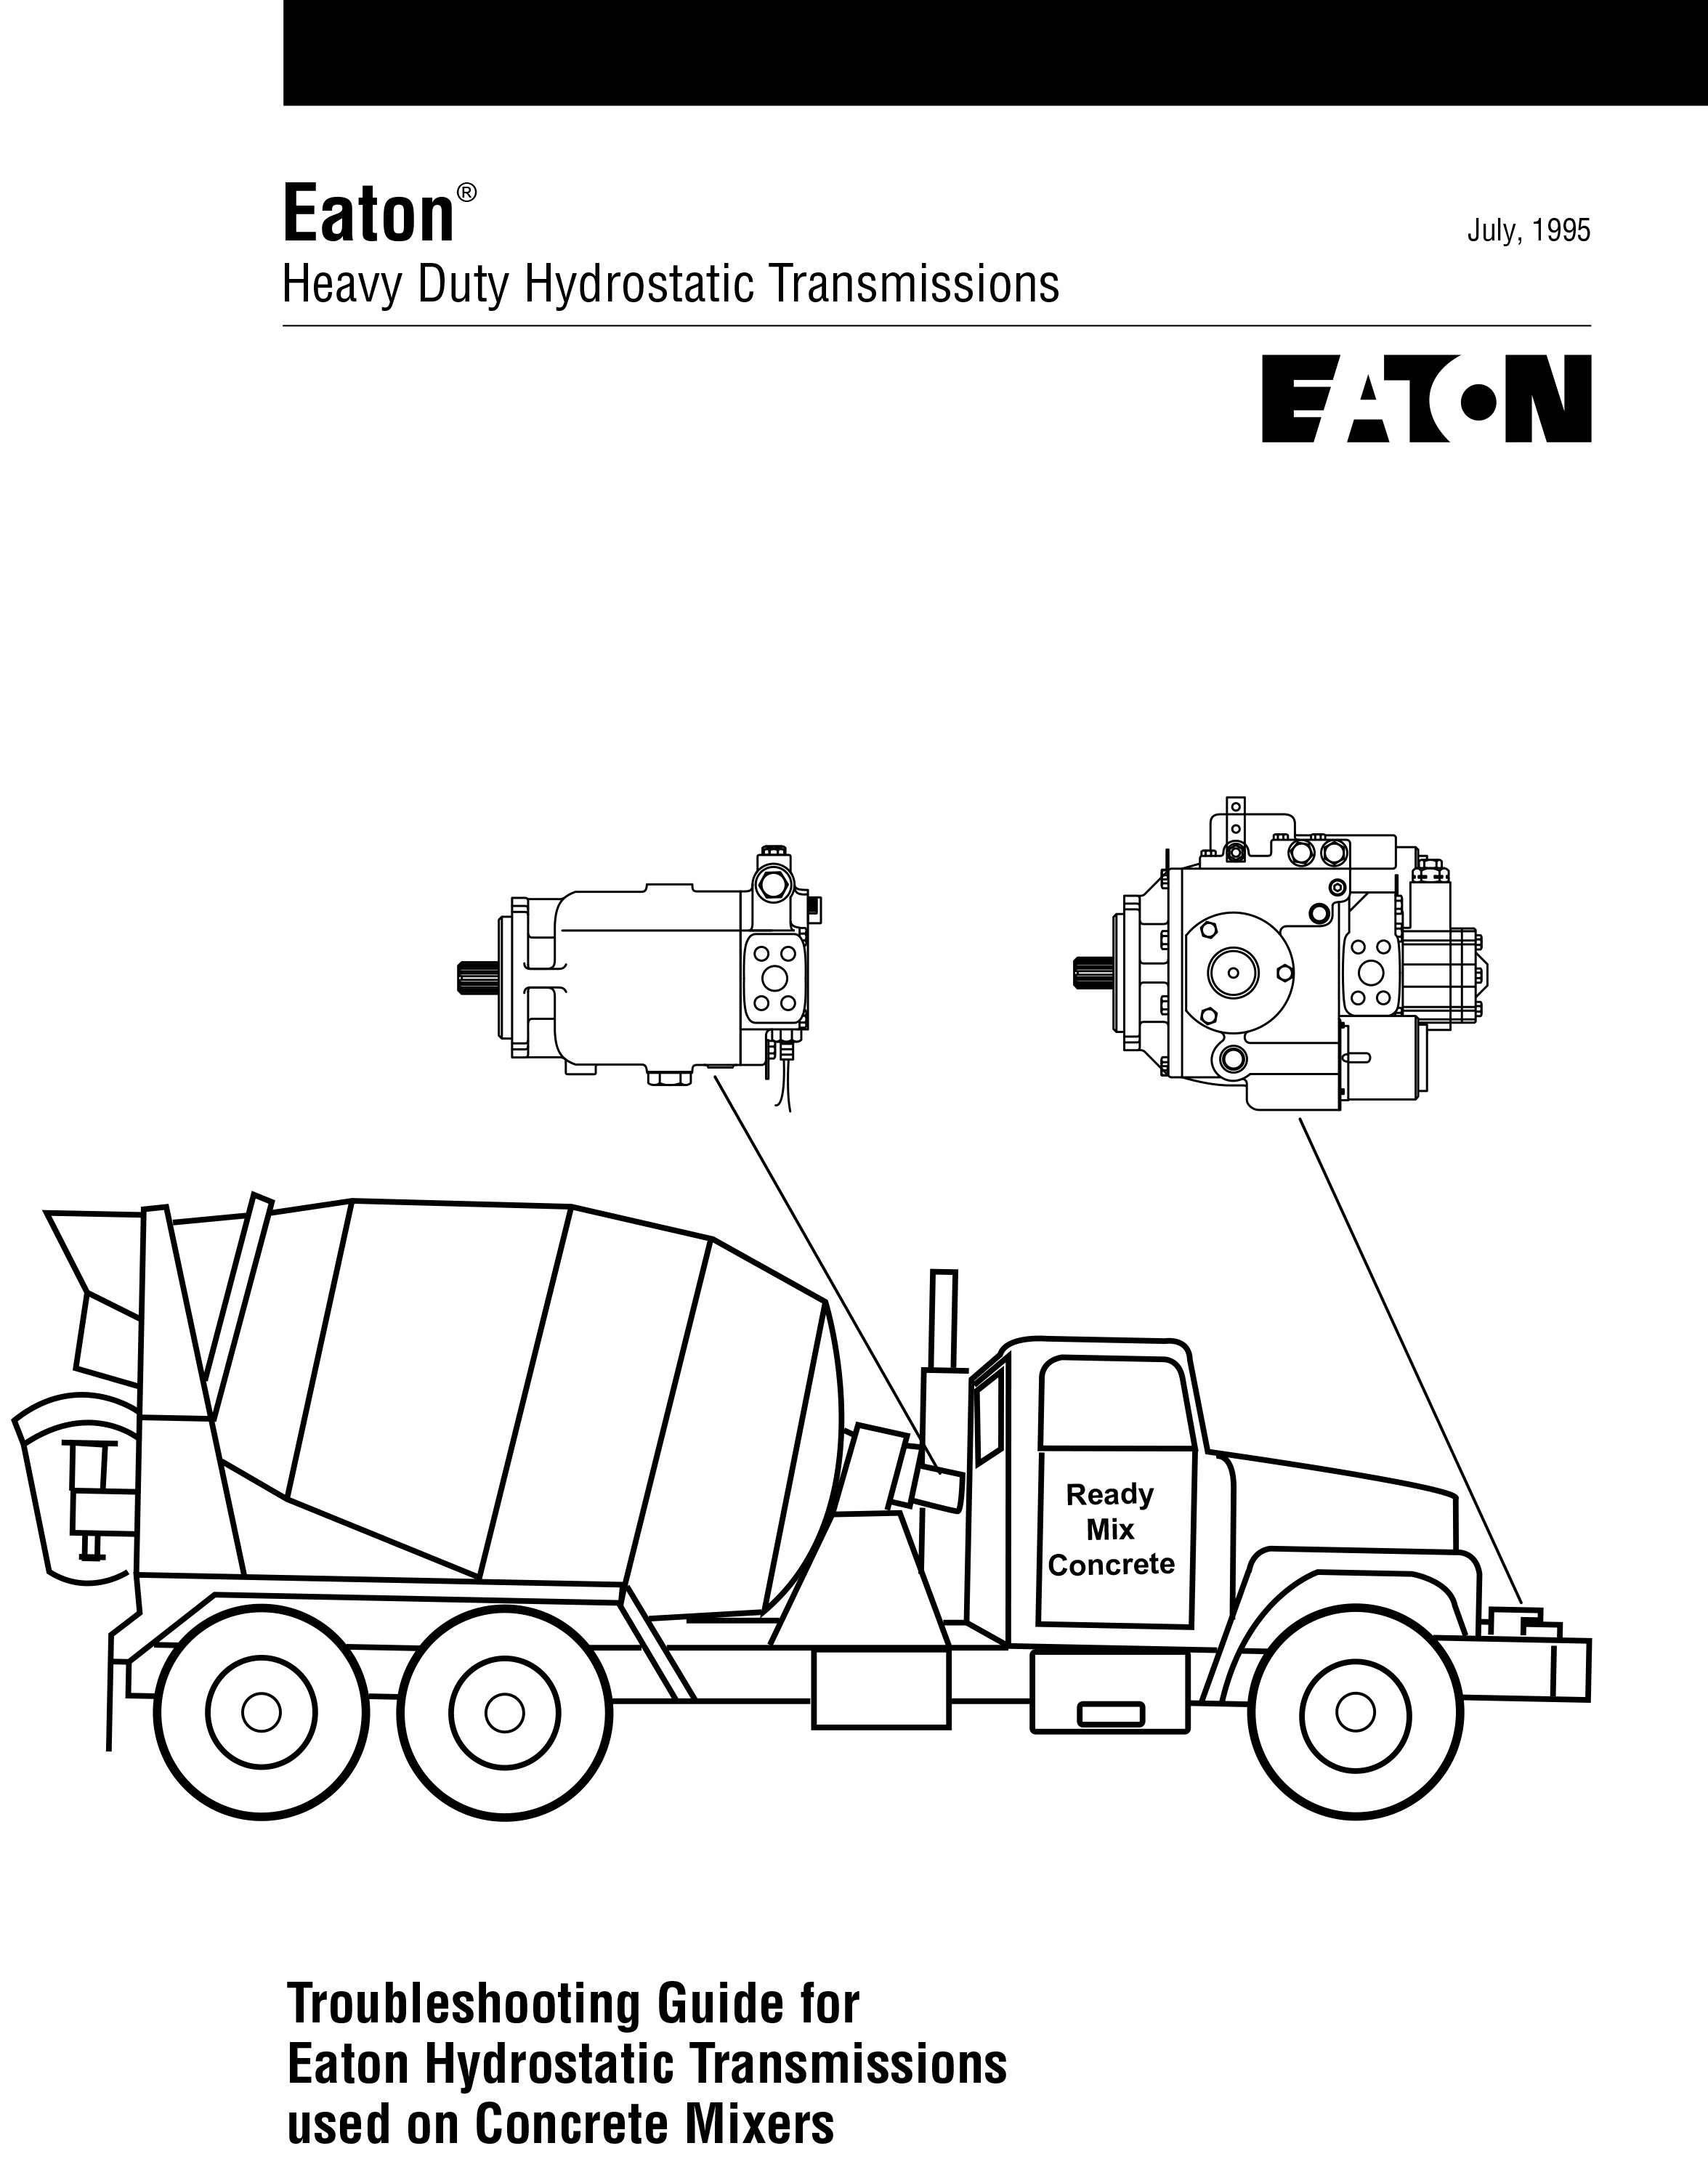 Eaton - Troubleshooting Guide Hydrostatic Transmissions